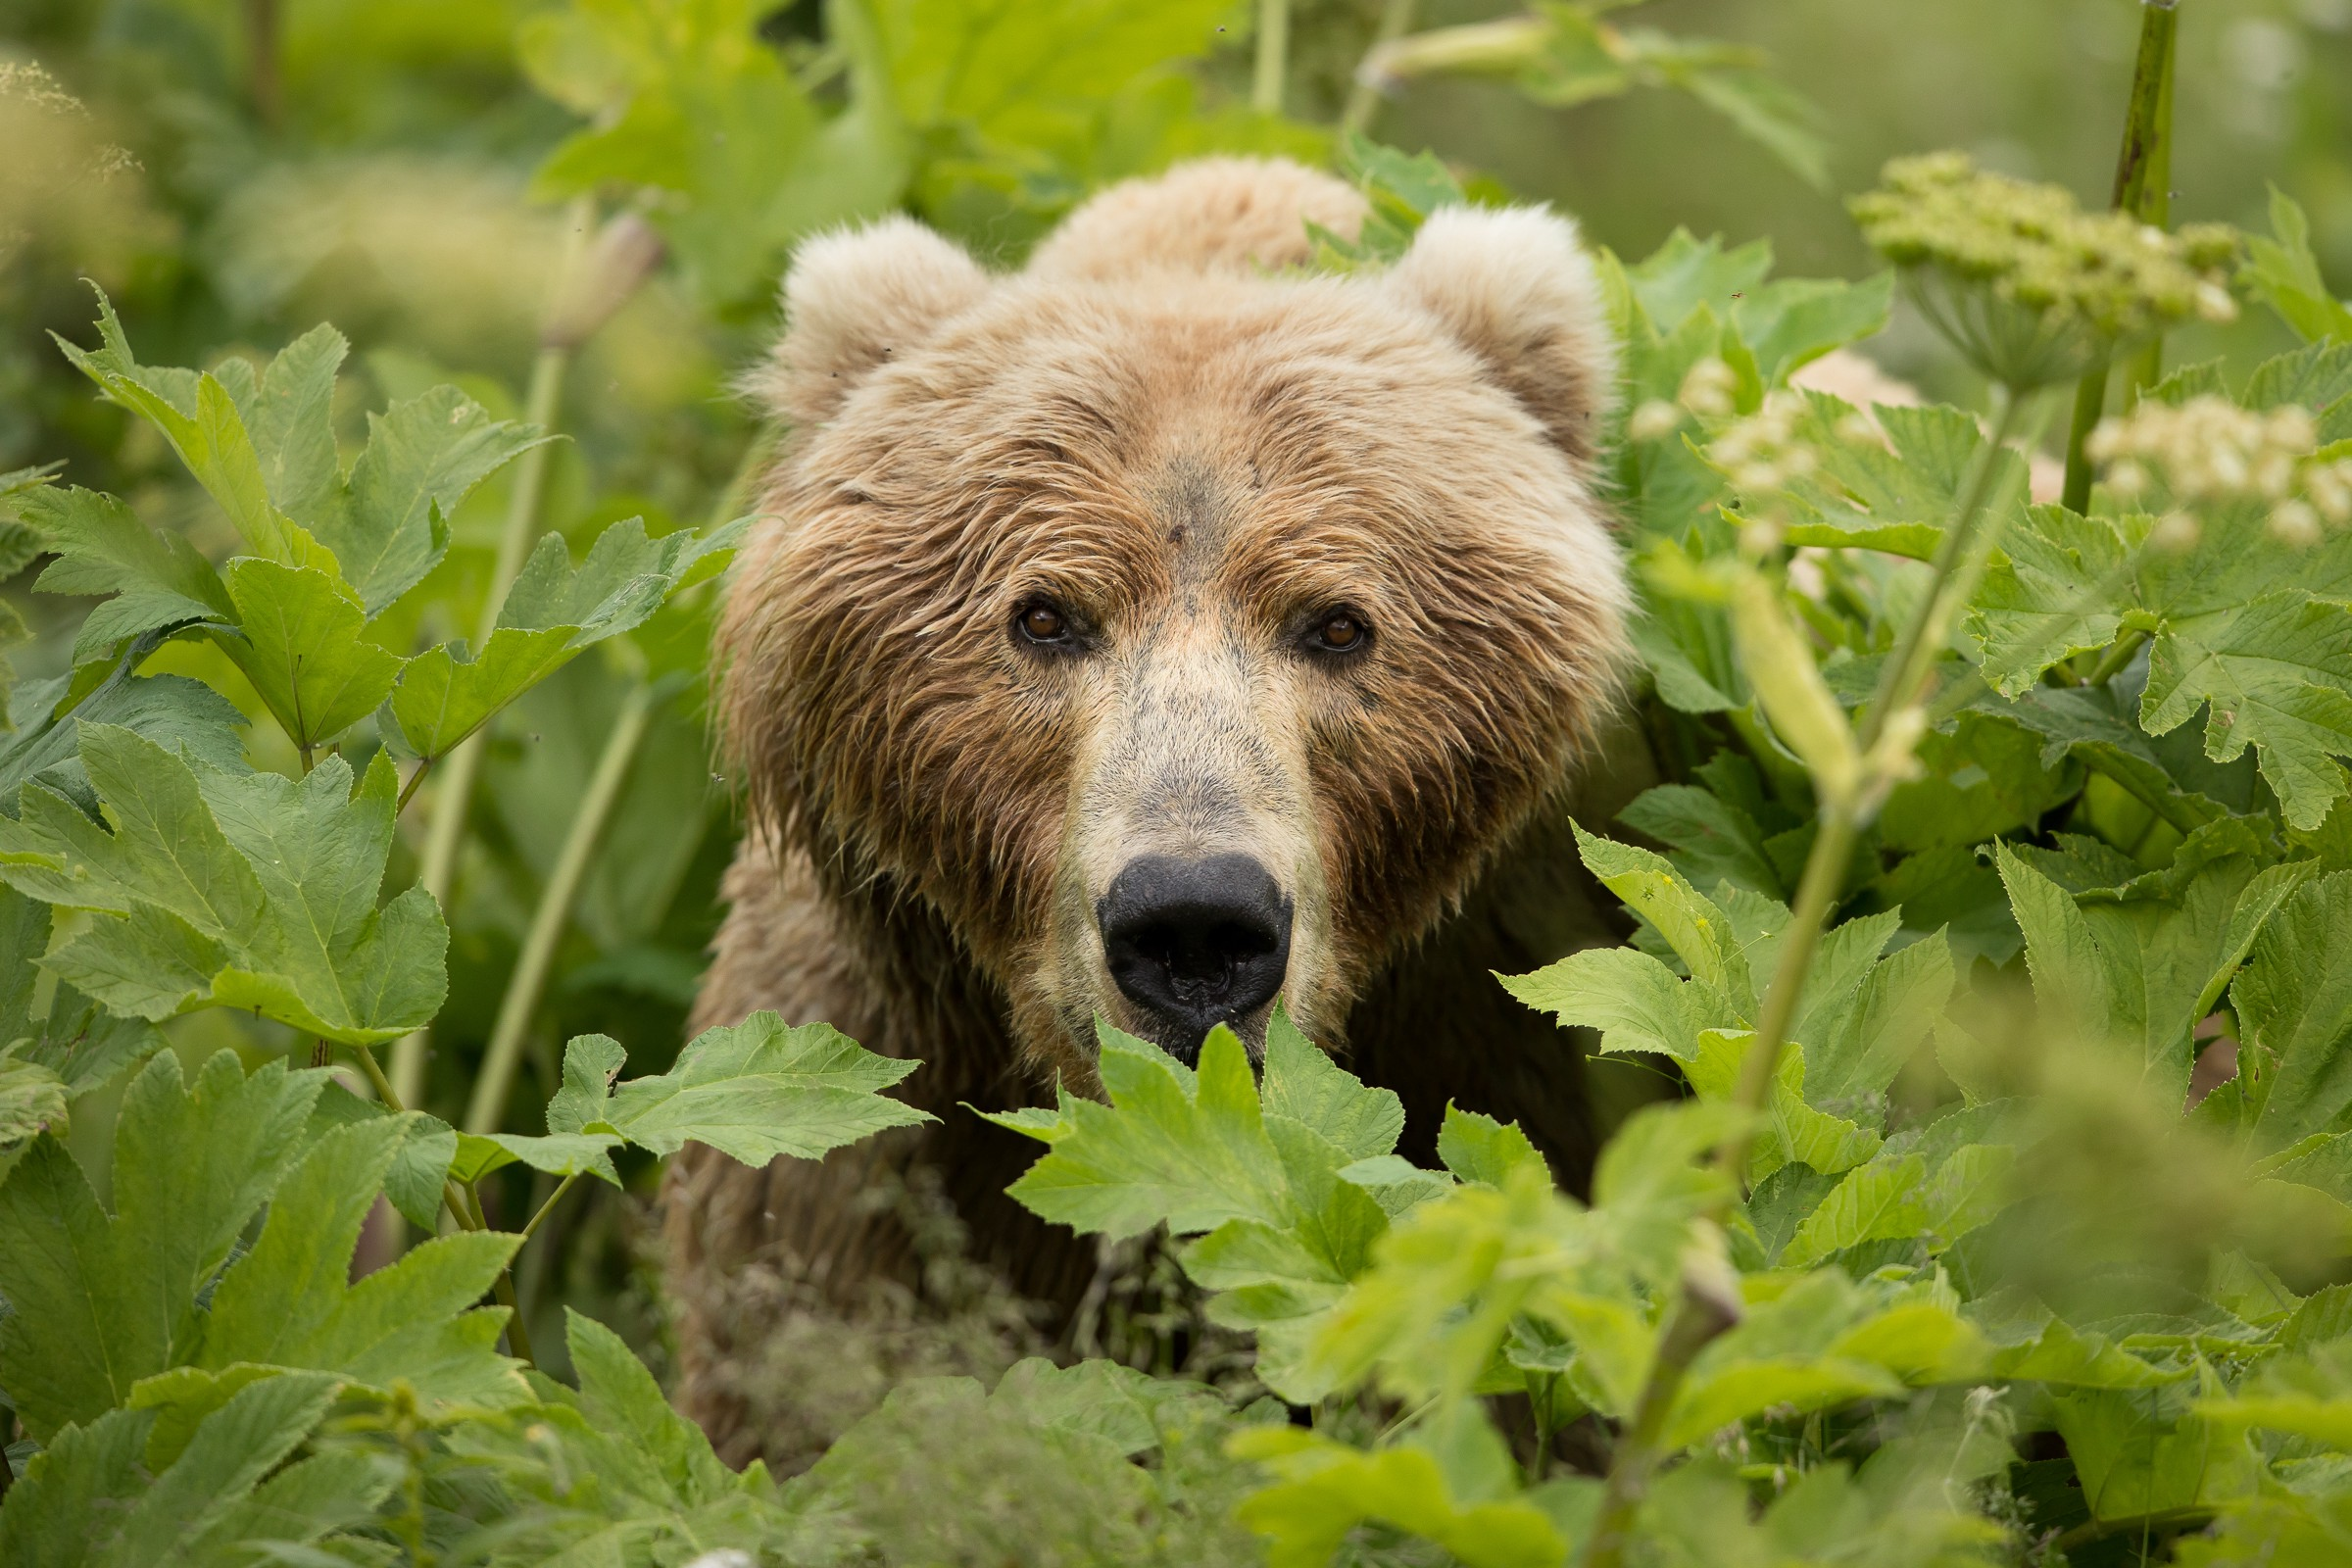 Kodiak brown bear looking directly at the camera